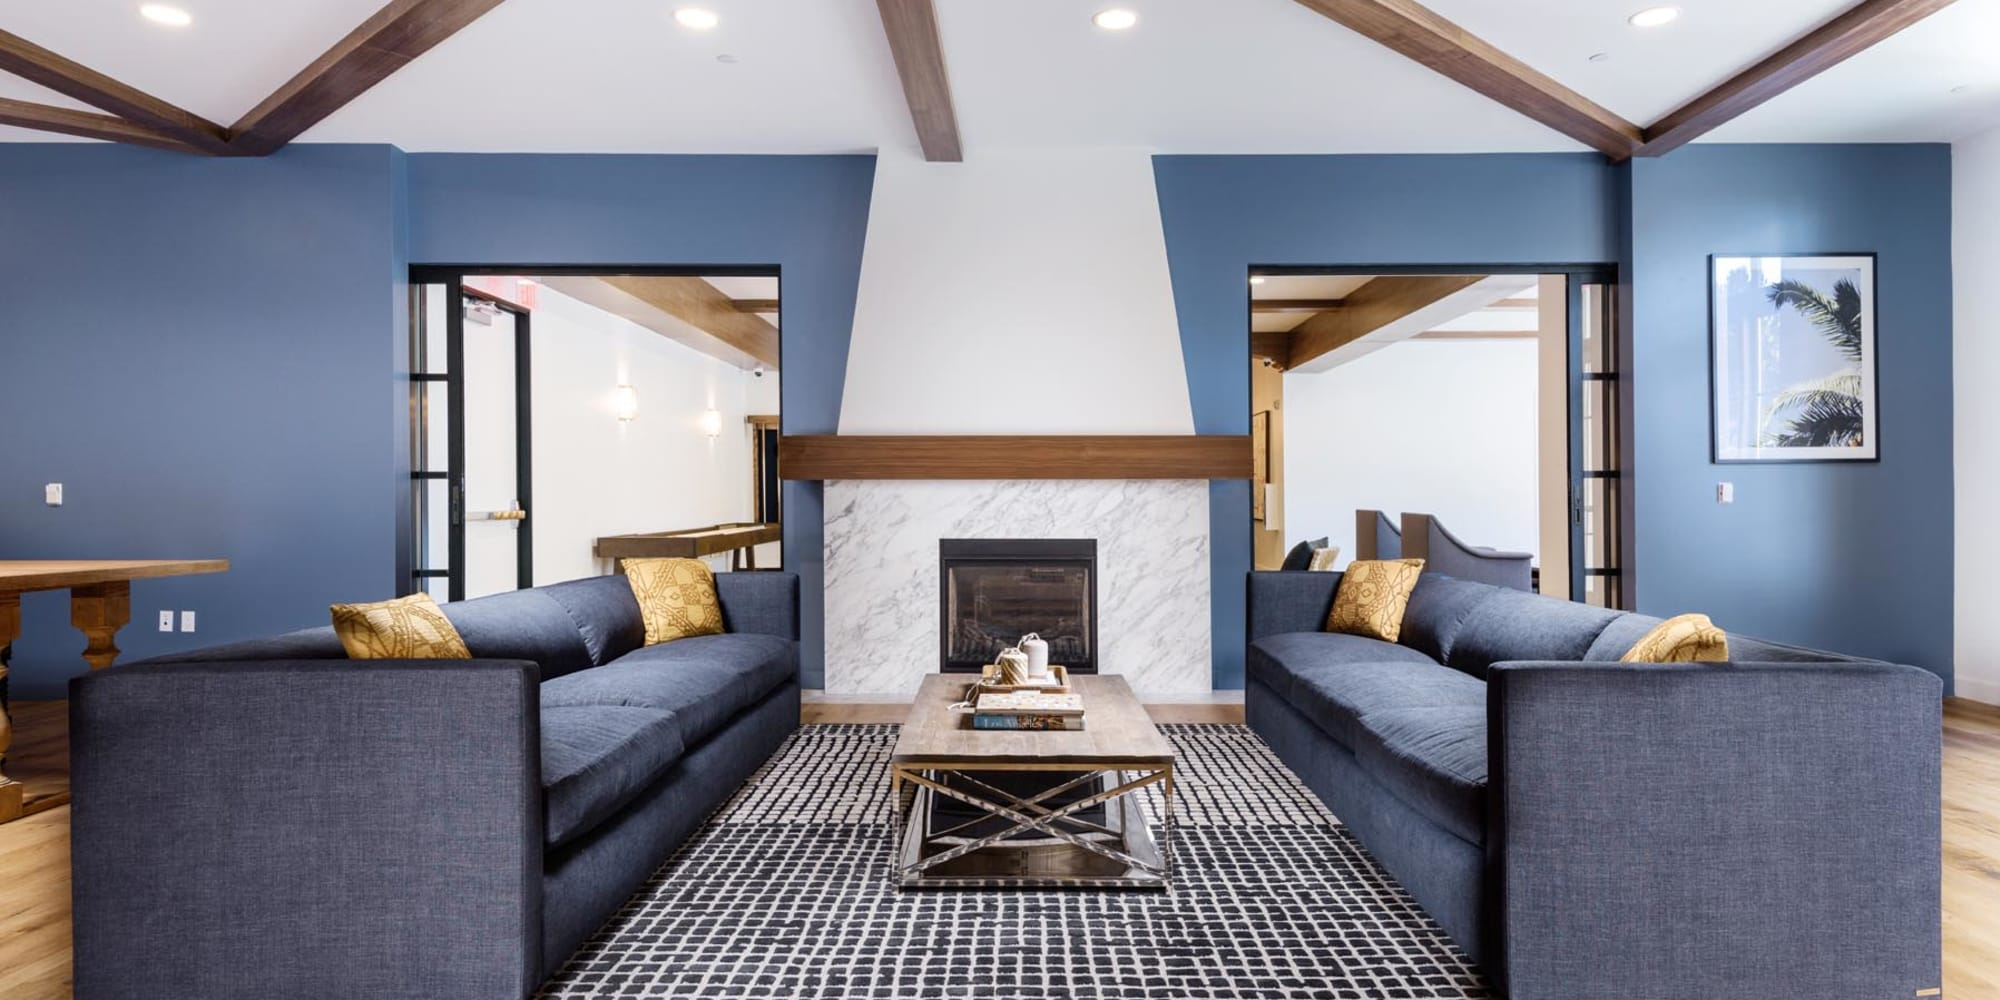 Fireplace lounge area in the clubhouse at Mission Hills in Camarillo, California